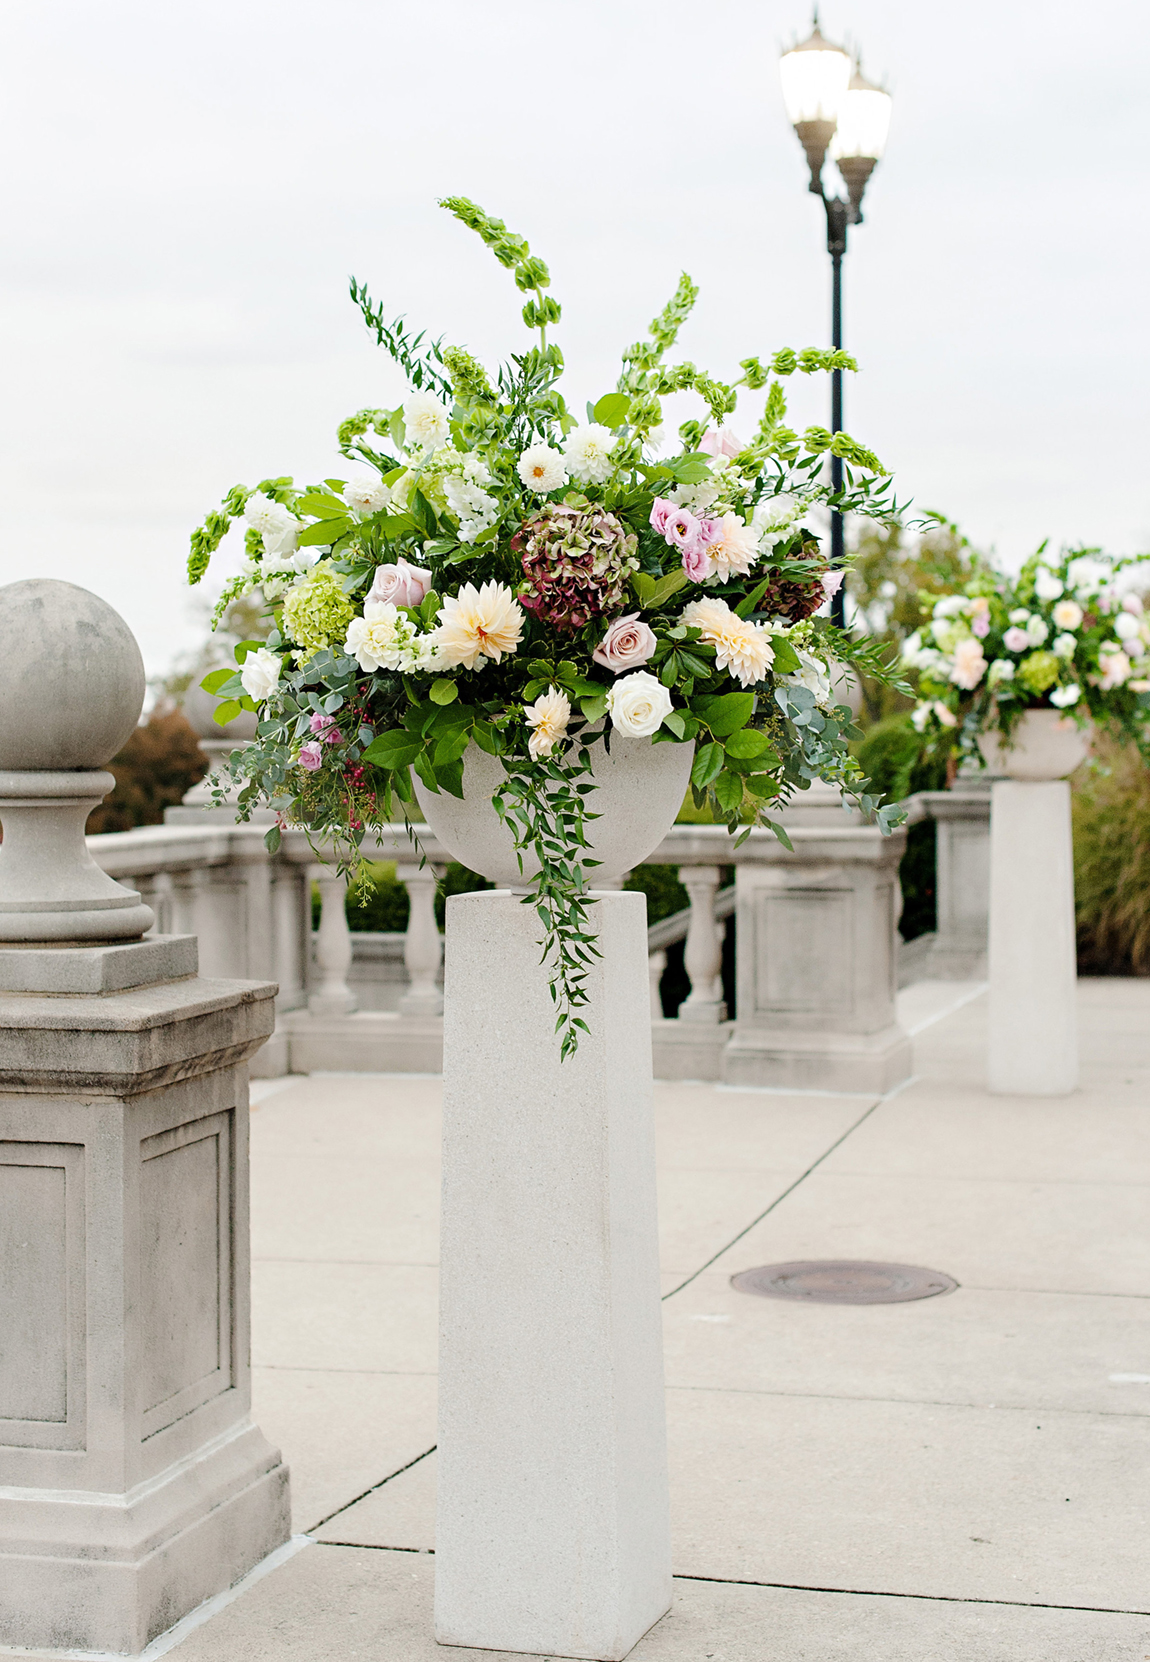 Lush, natural fresh ceremony flower arrangements in fall pastels, greens, crimson red and burgundy accents set on tall pedestals for an outdoor wedding at Cincinnati's Ault Park Pavilion.